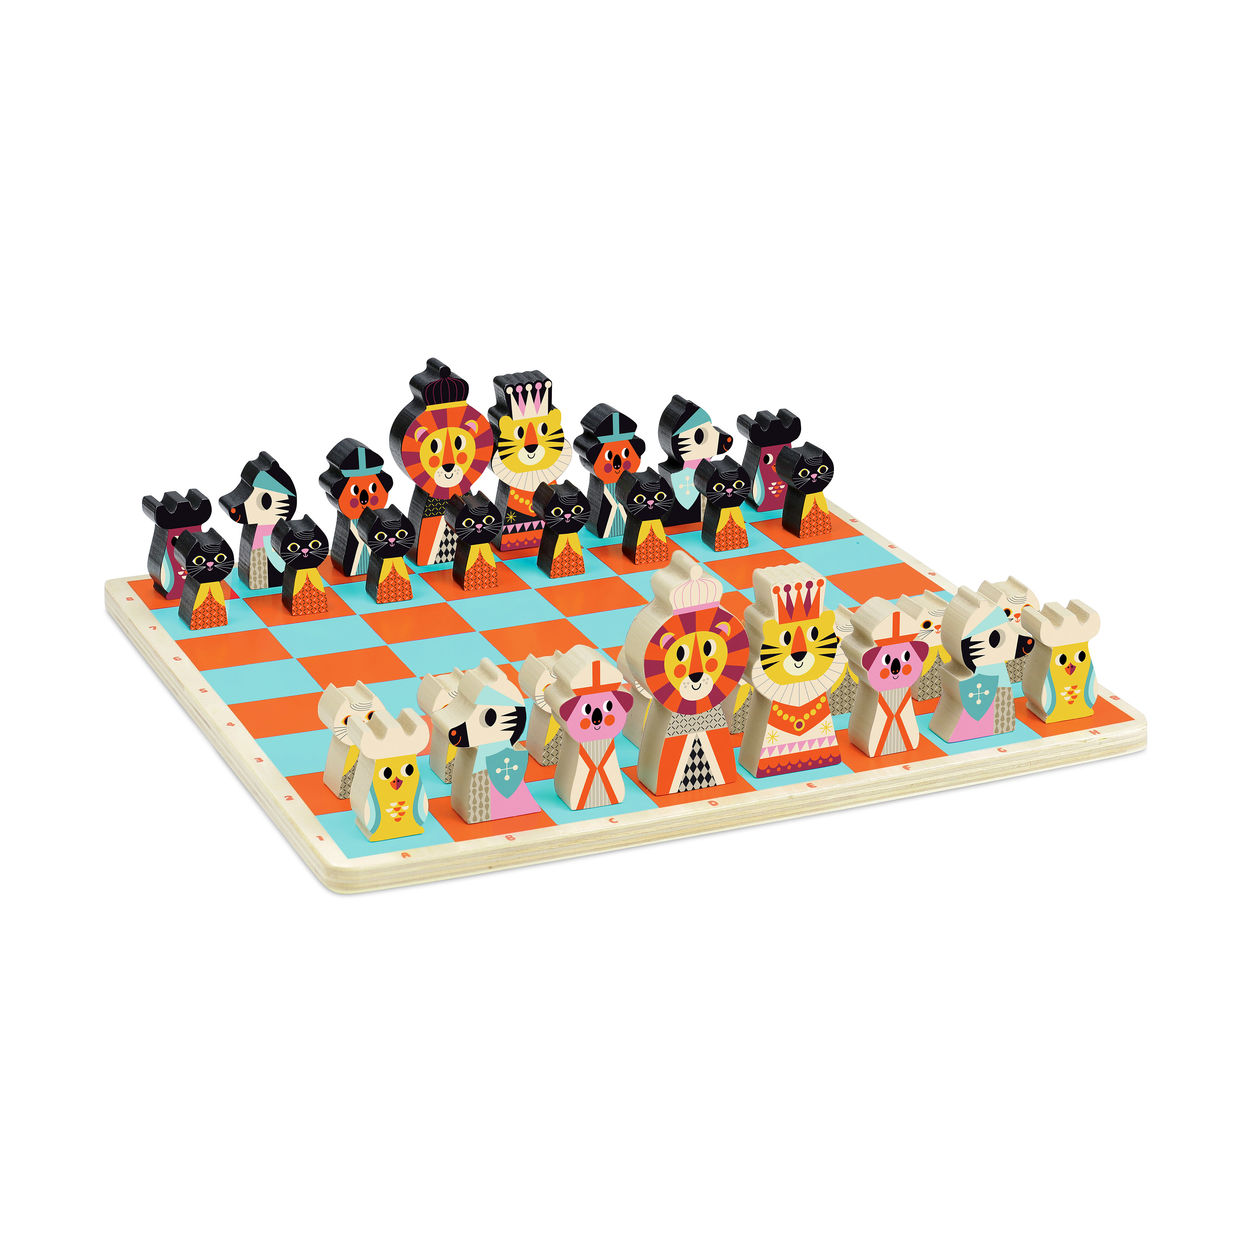 kids chess set ingela p arenhus